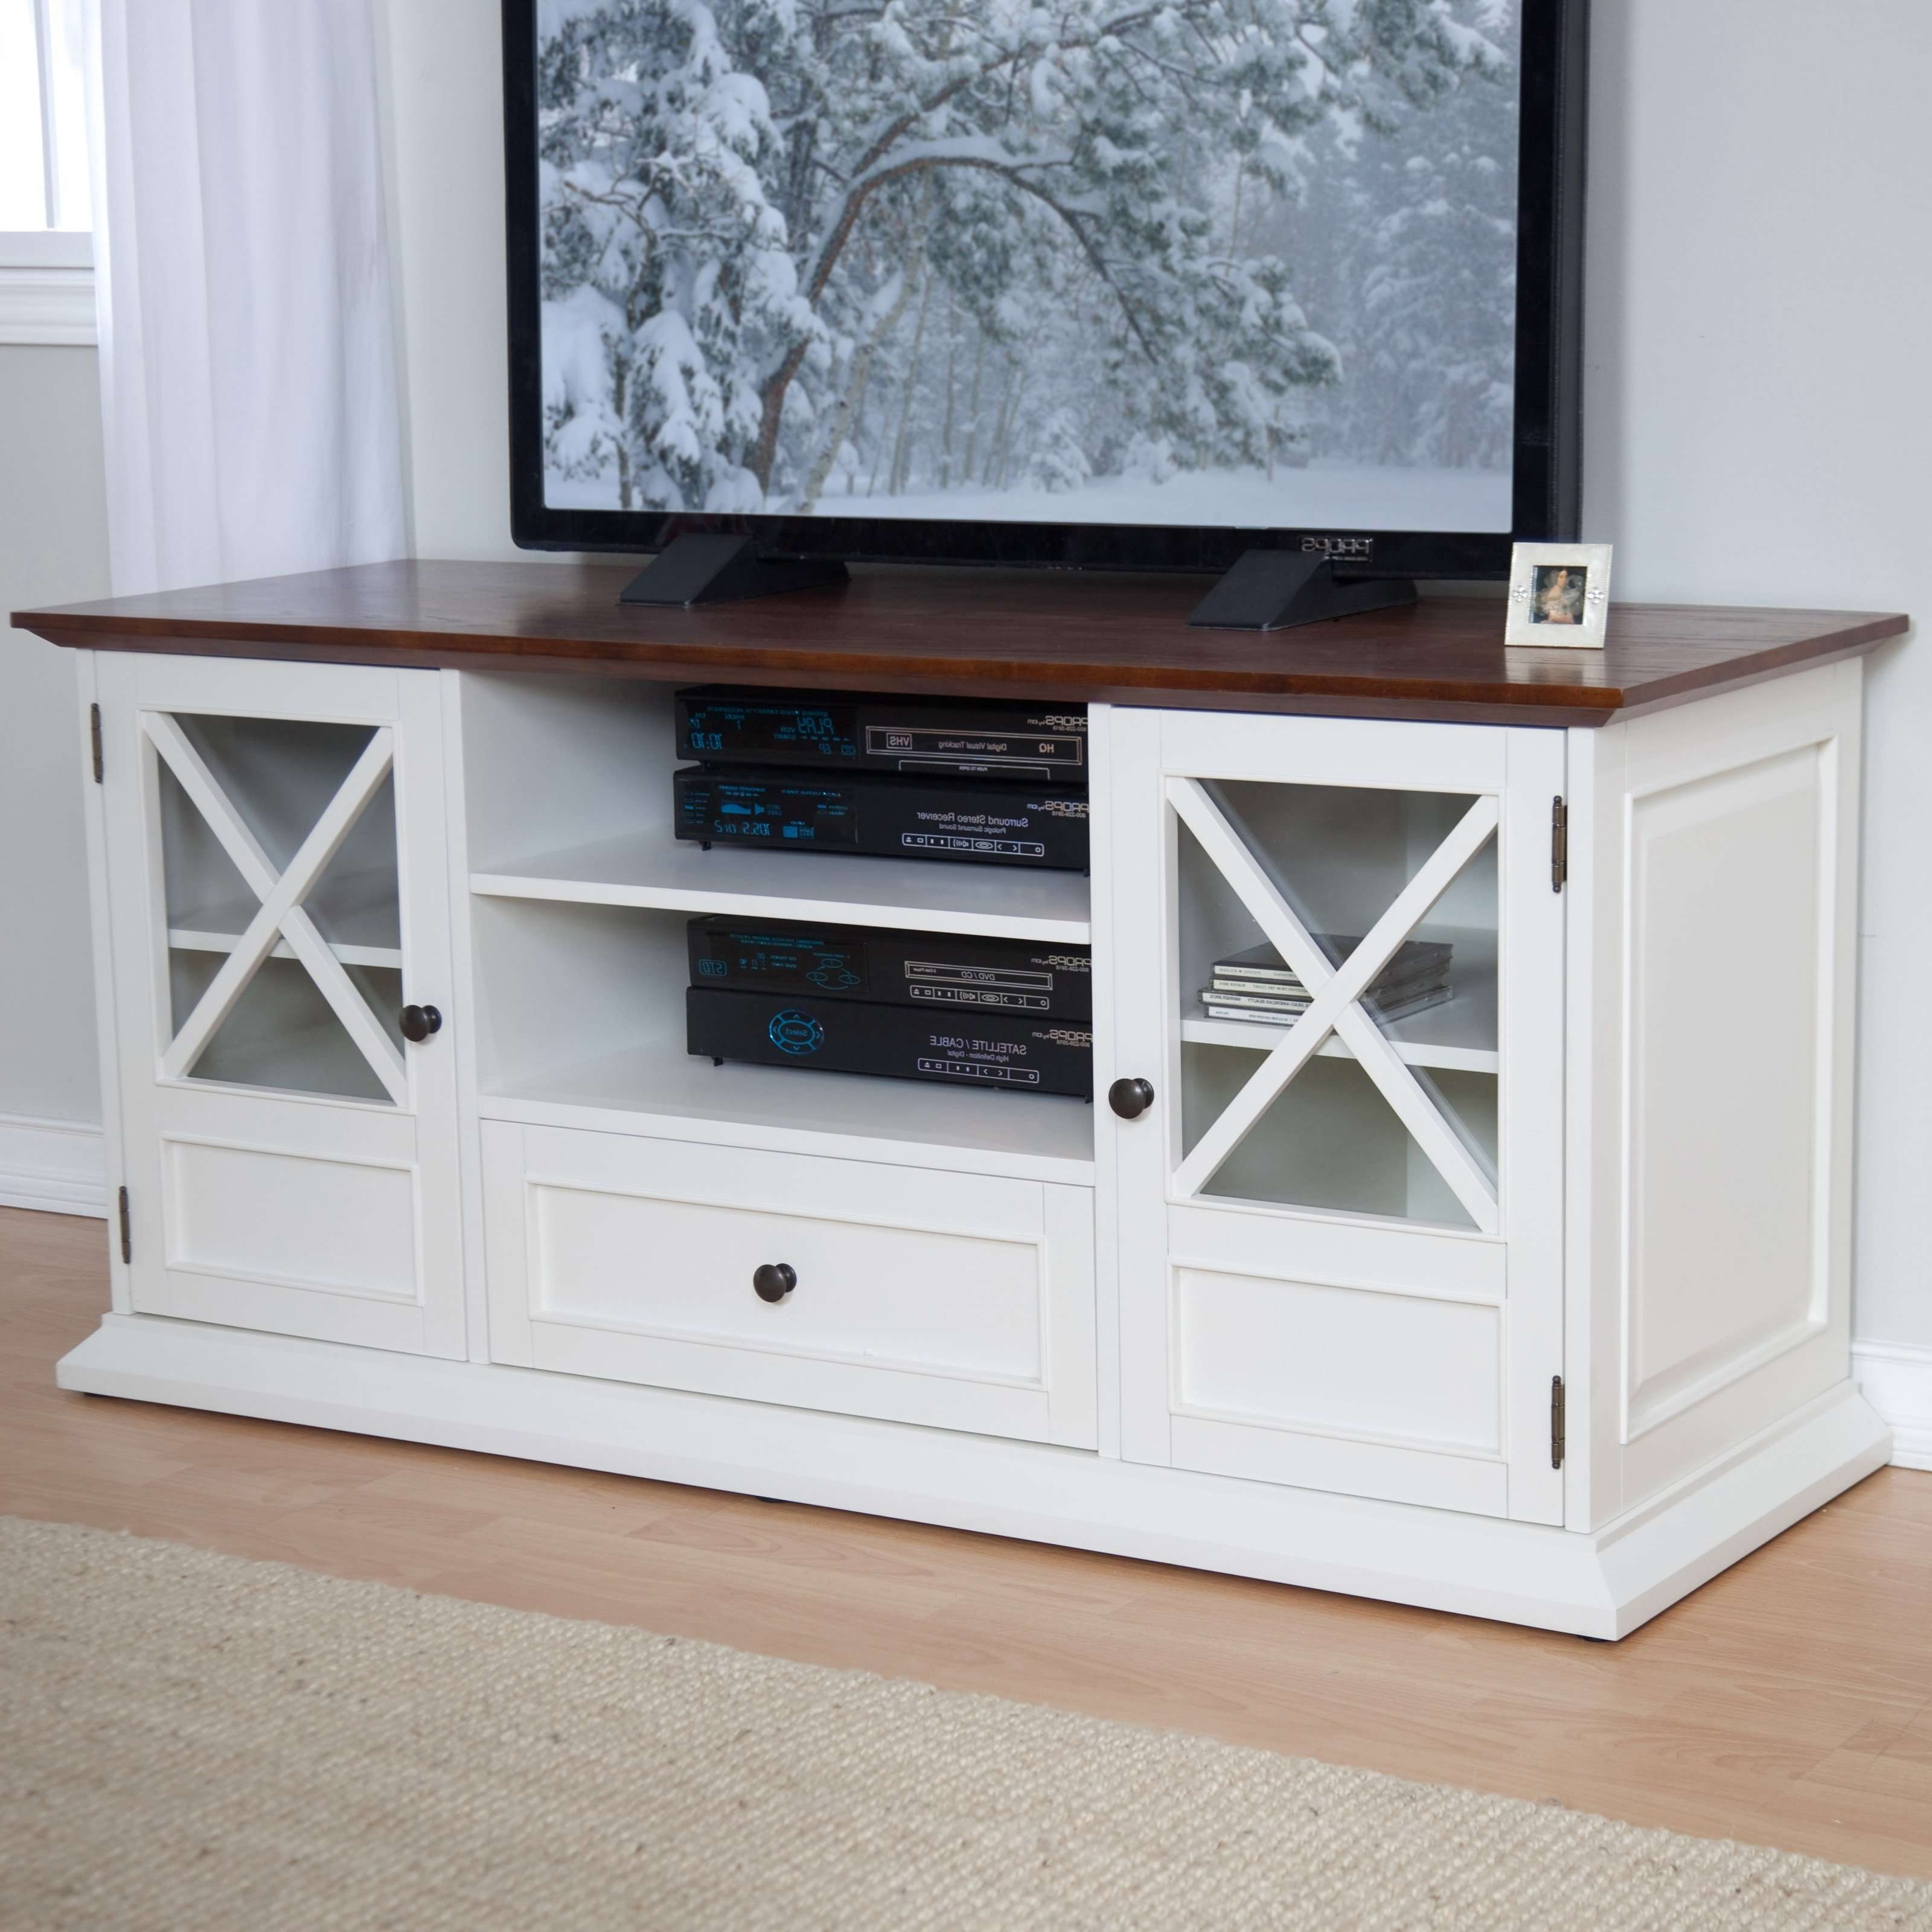 84 Inch Tv Stand Intended For 84 Inch Tv Stands (Gallery 5 of 15)